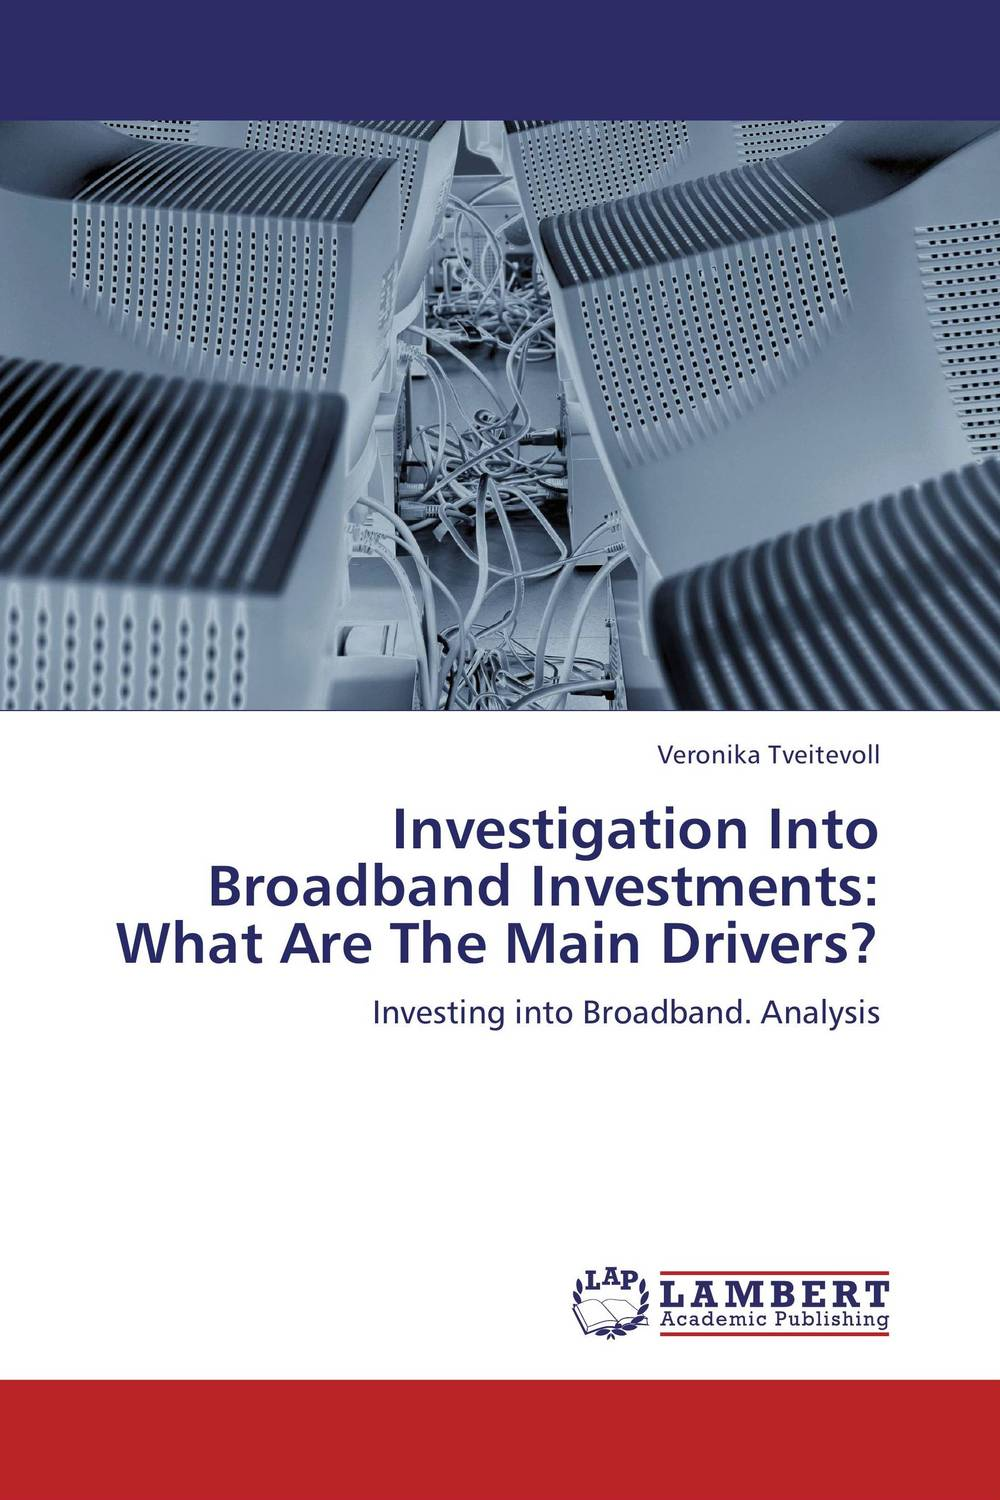 Investigation Into Broadband Investments: What Are The Main Drivers? theodore gilliland fisher investments on utilities